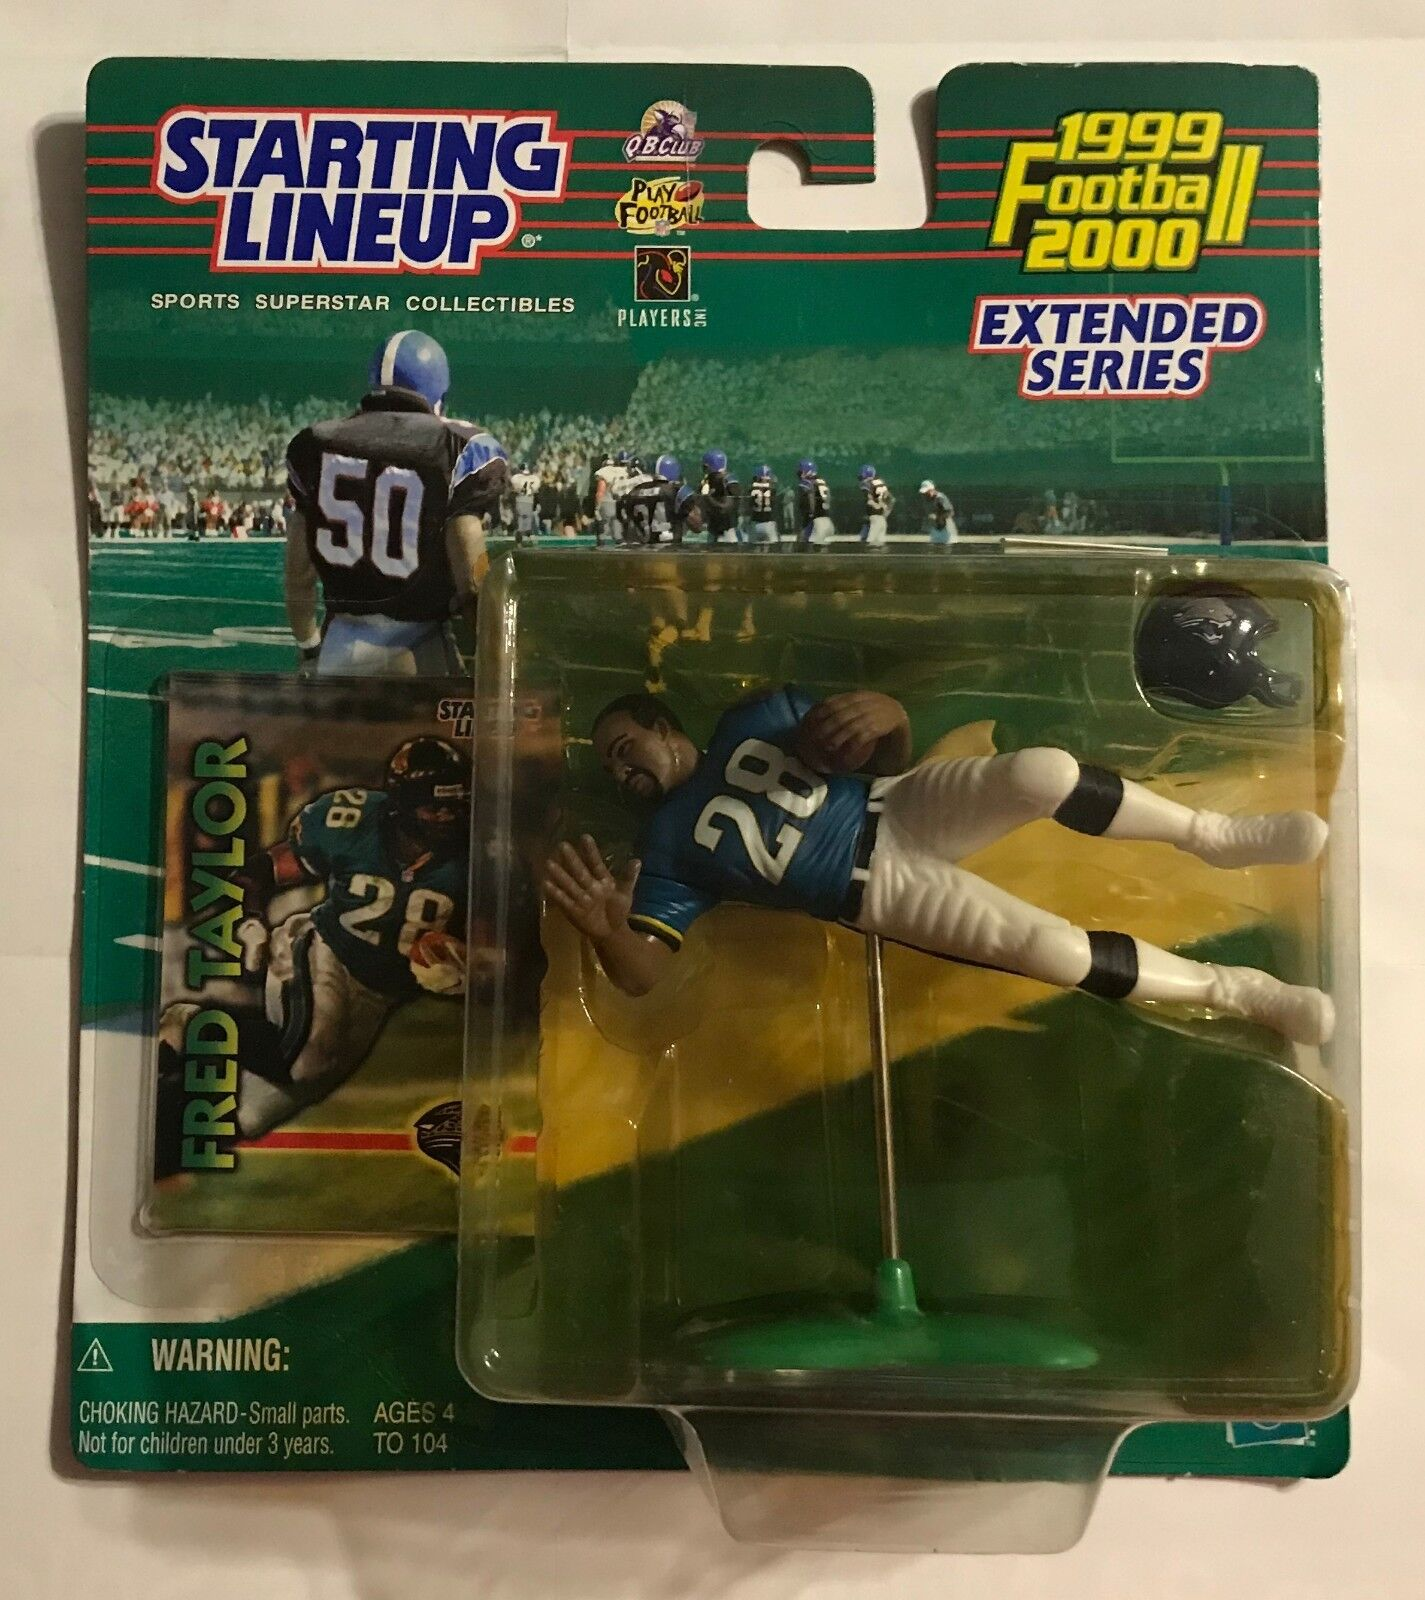 1999 2000 STARTING LINEUP - FRED TAYLOR - ACTION FIGURE